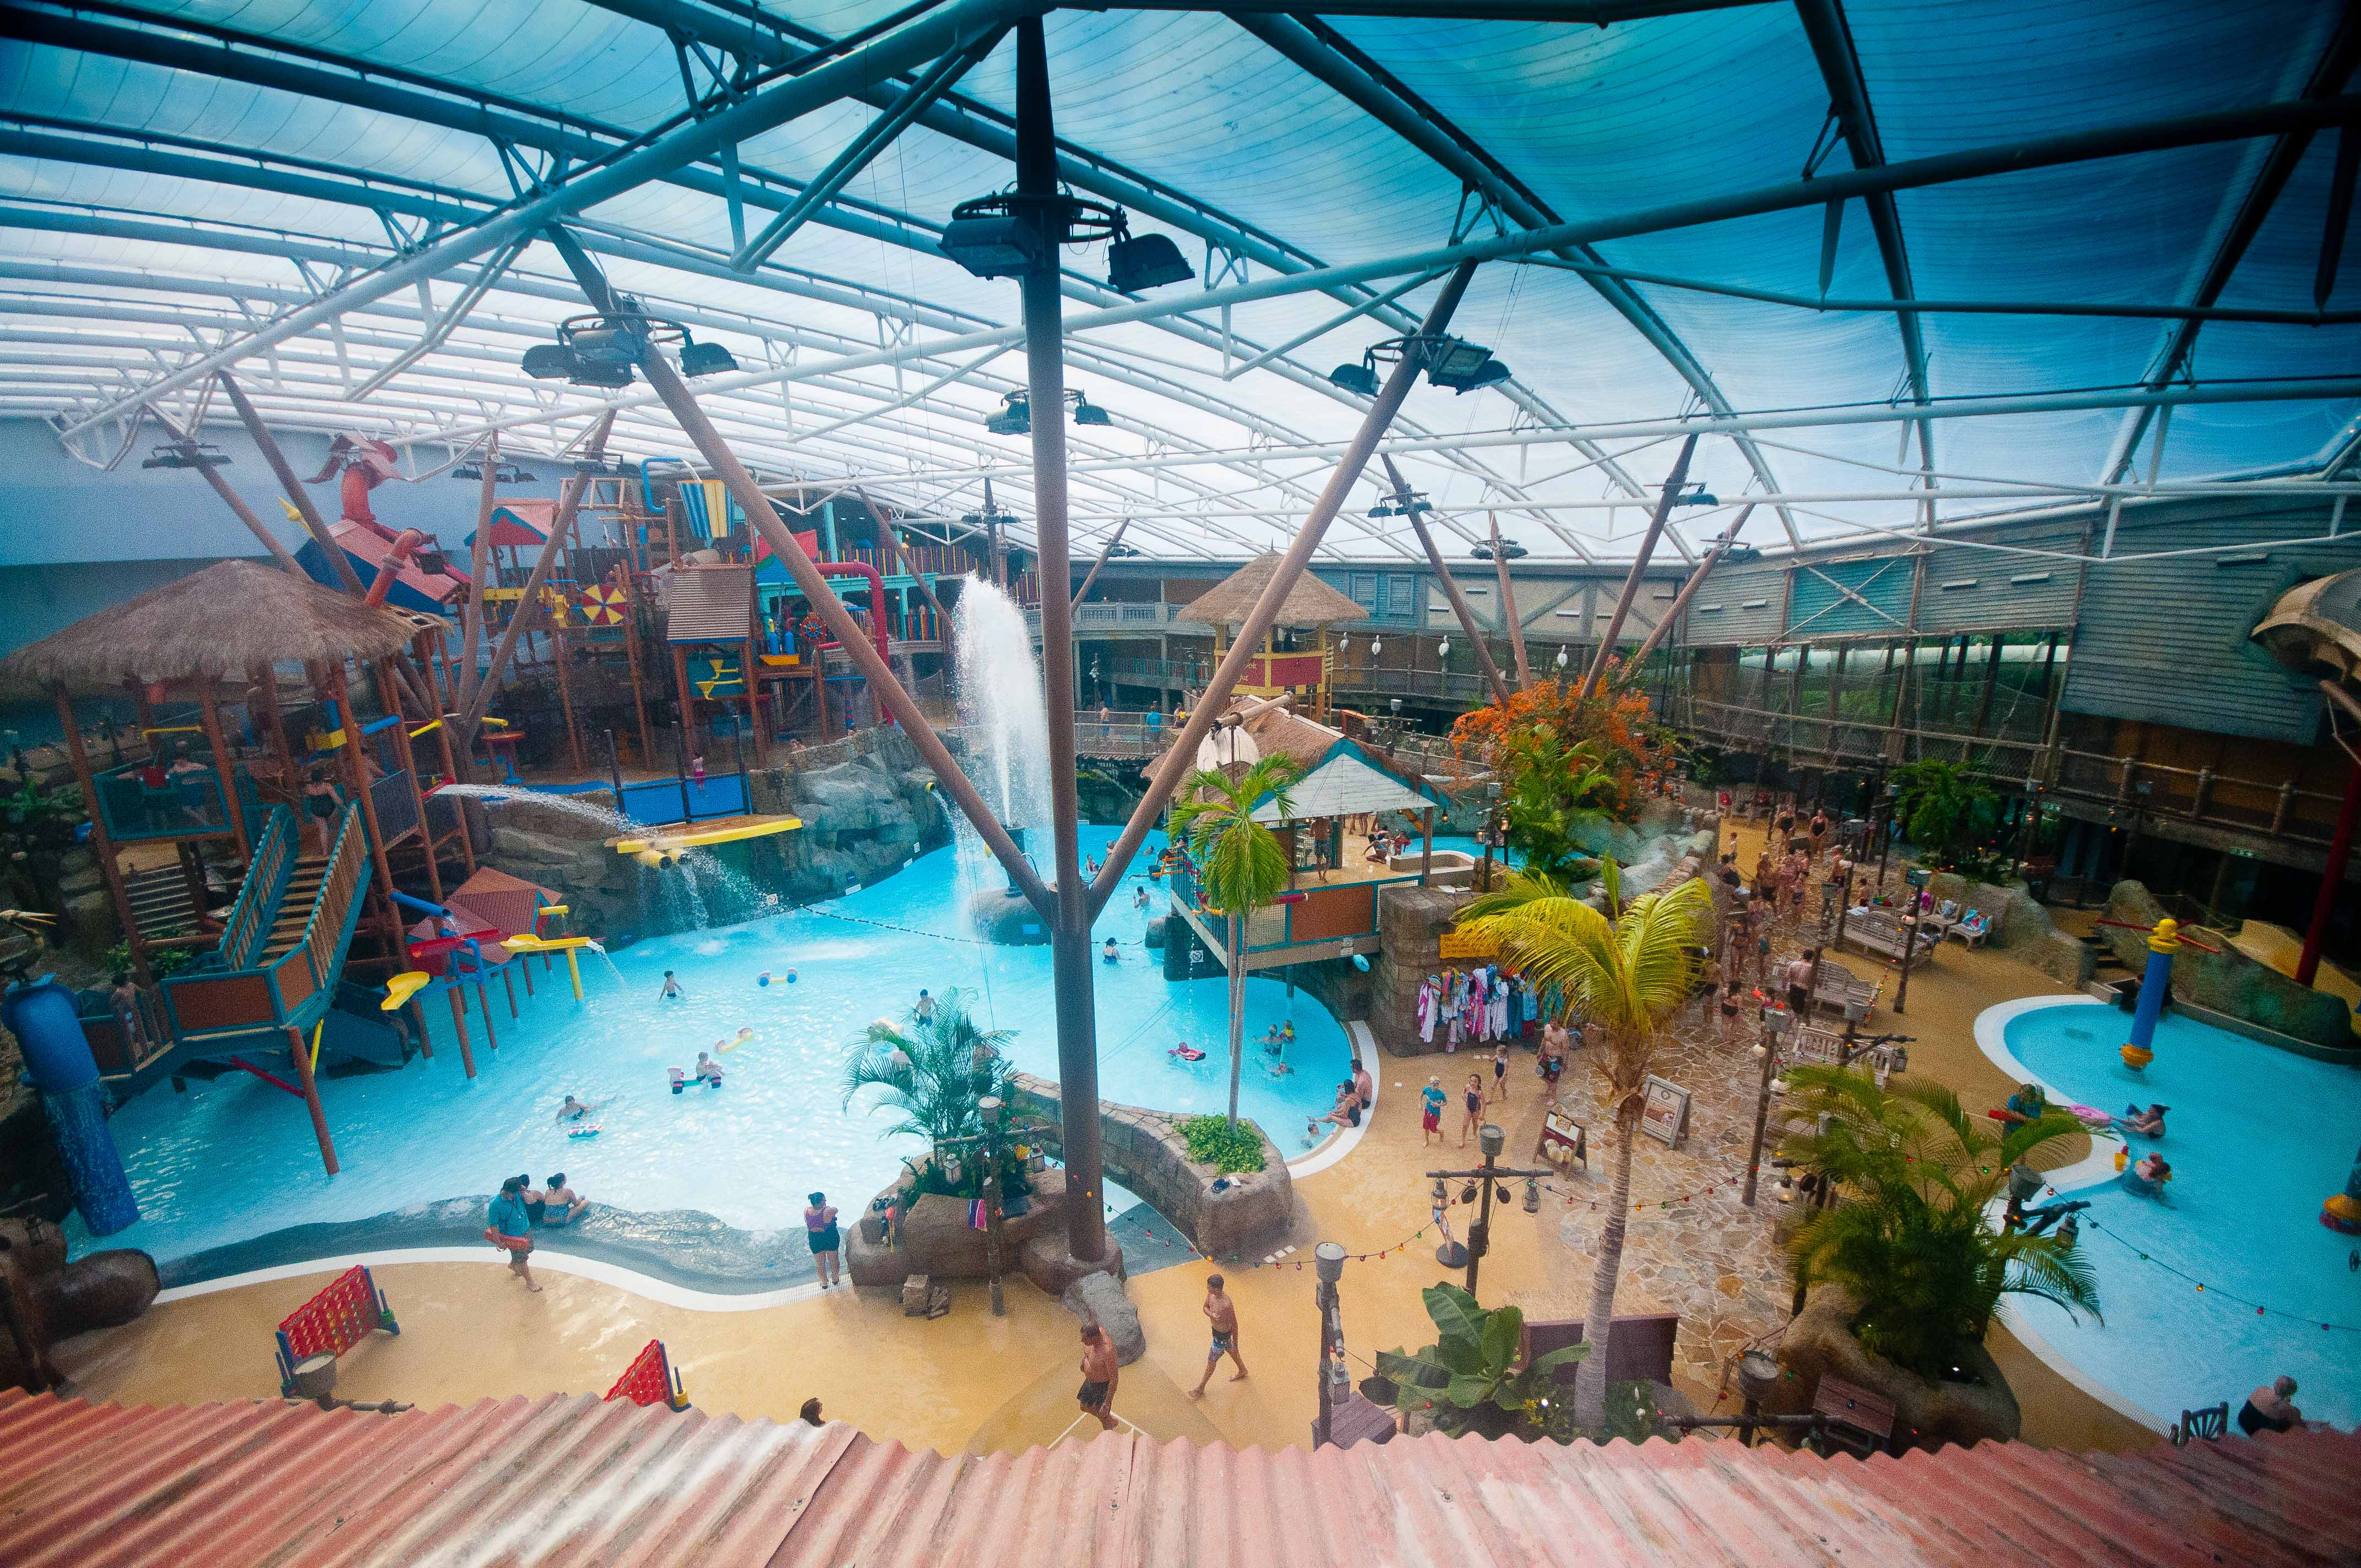 Super Cheap Splash And Play Stays At Alton Towers Resort In November December Kip Hakes